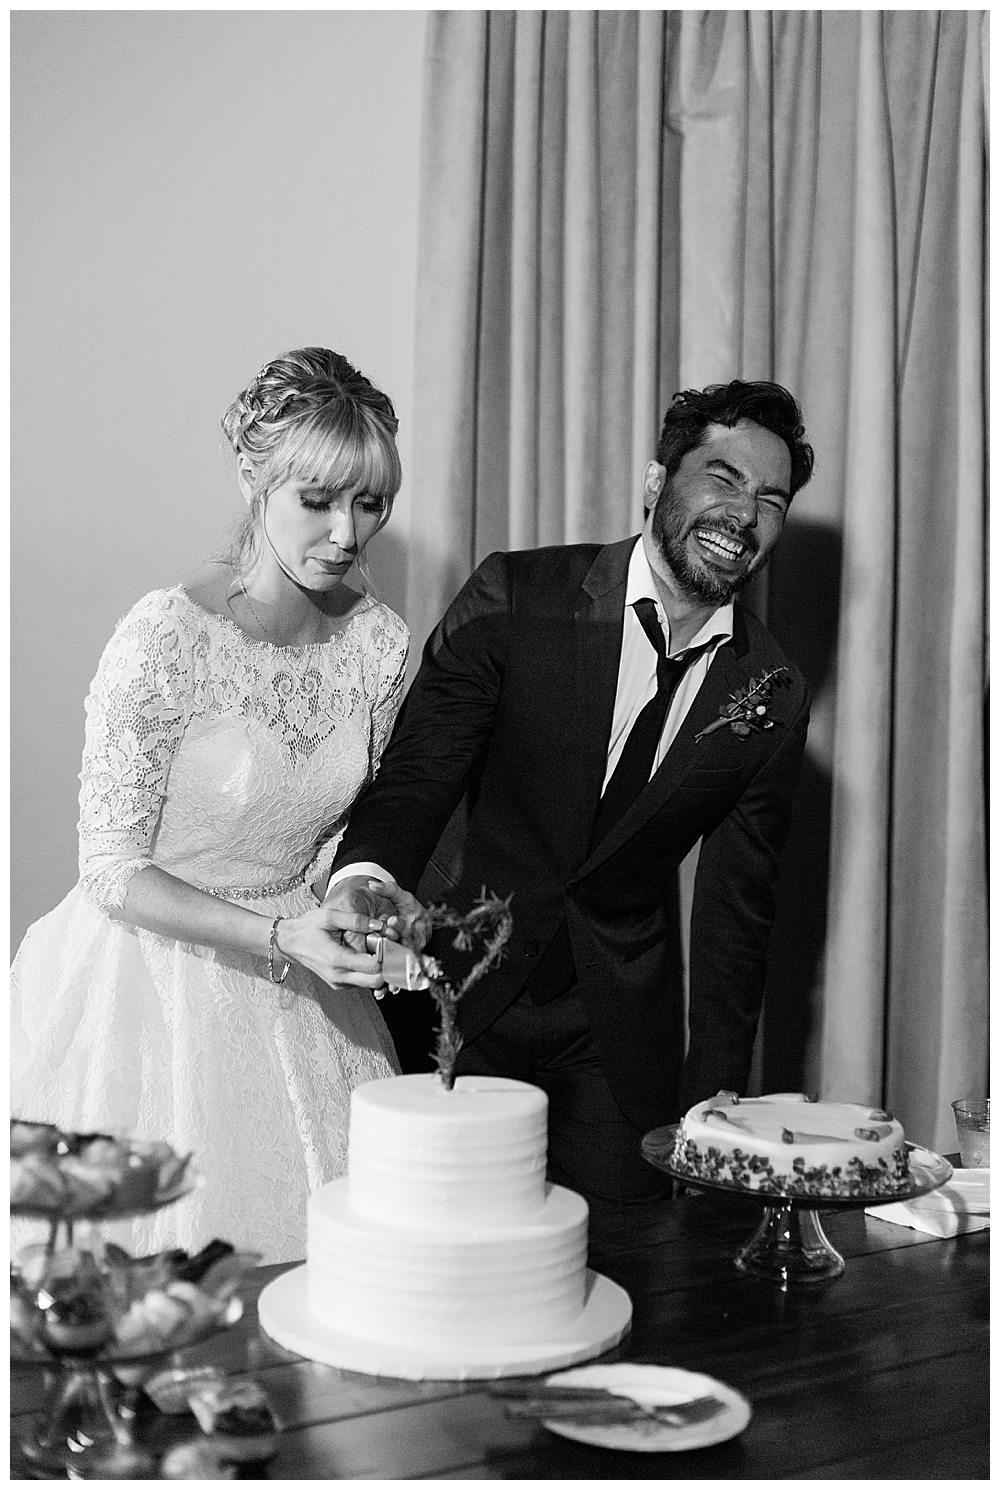 black-and-white-cake-cutting-wedding-photography